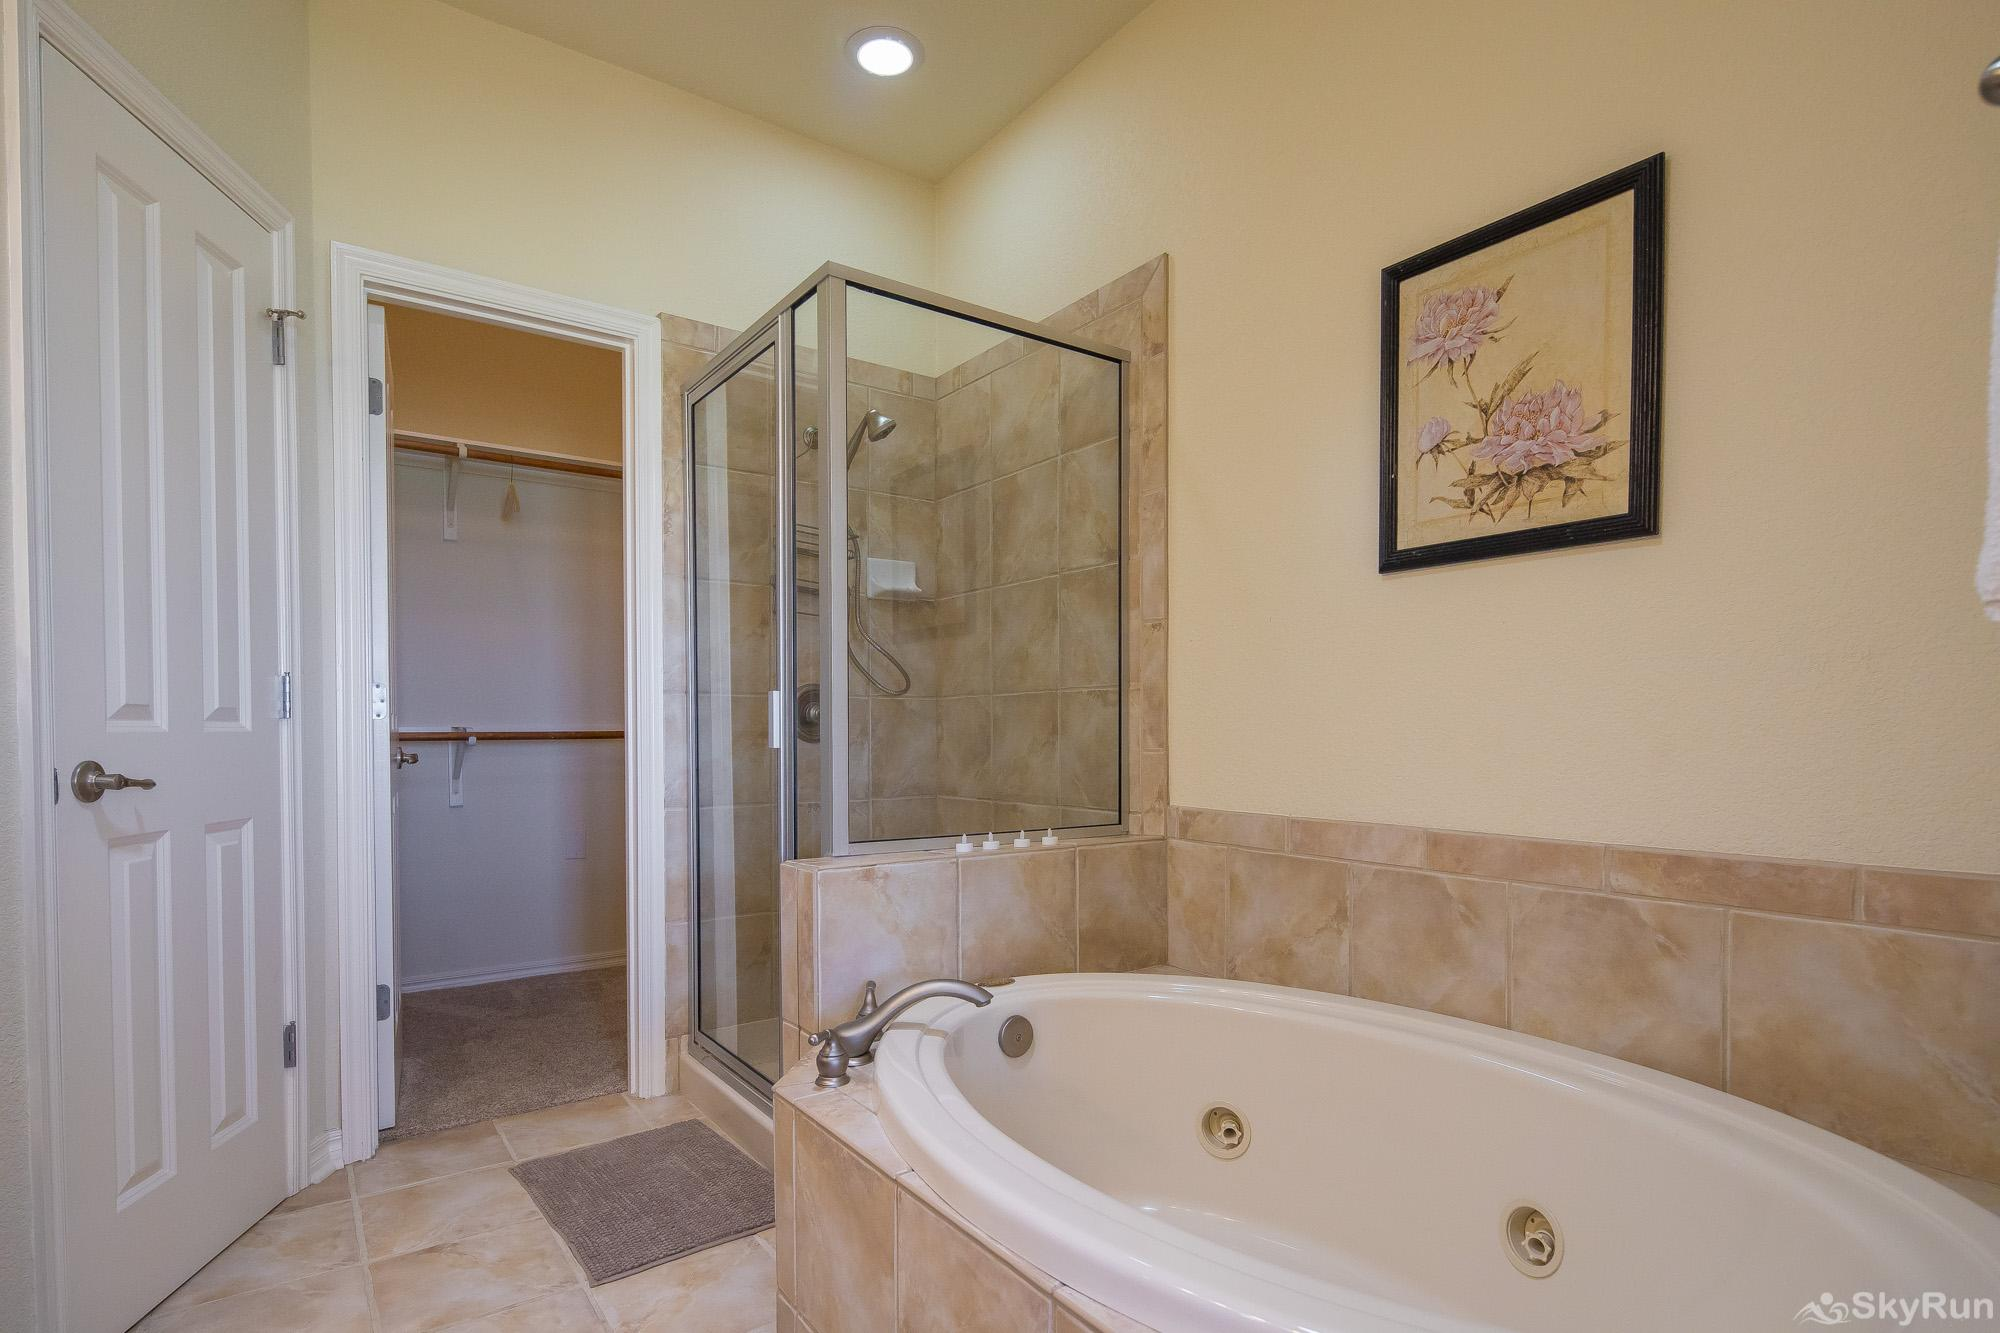 LAKESIDE HAVEN Master Bathroom, cont.